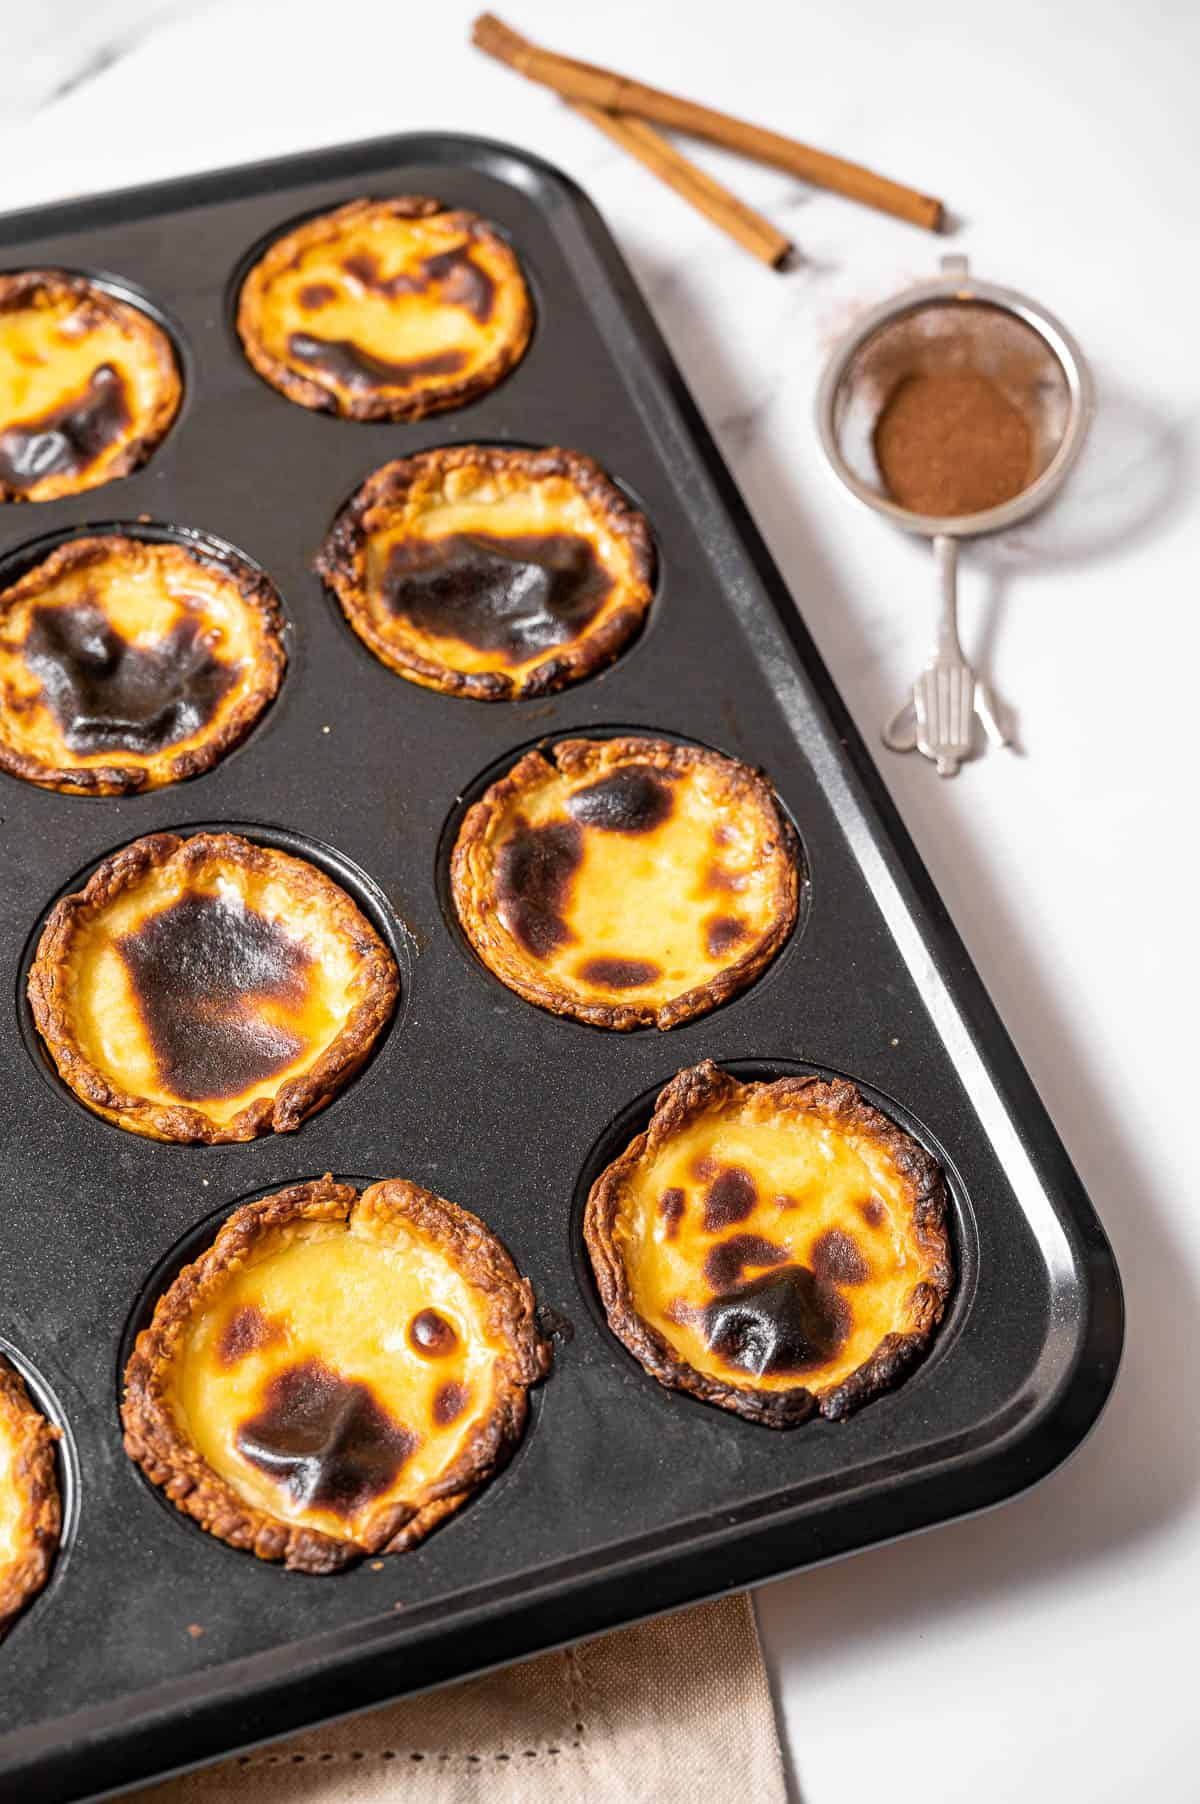 Portuguese Custard tarts in a baking tray with cinnamon in the background.